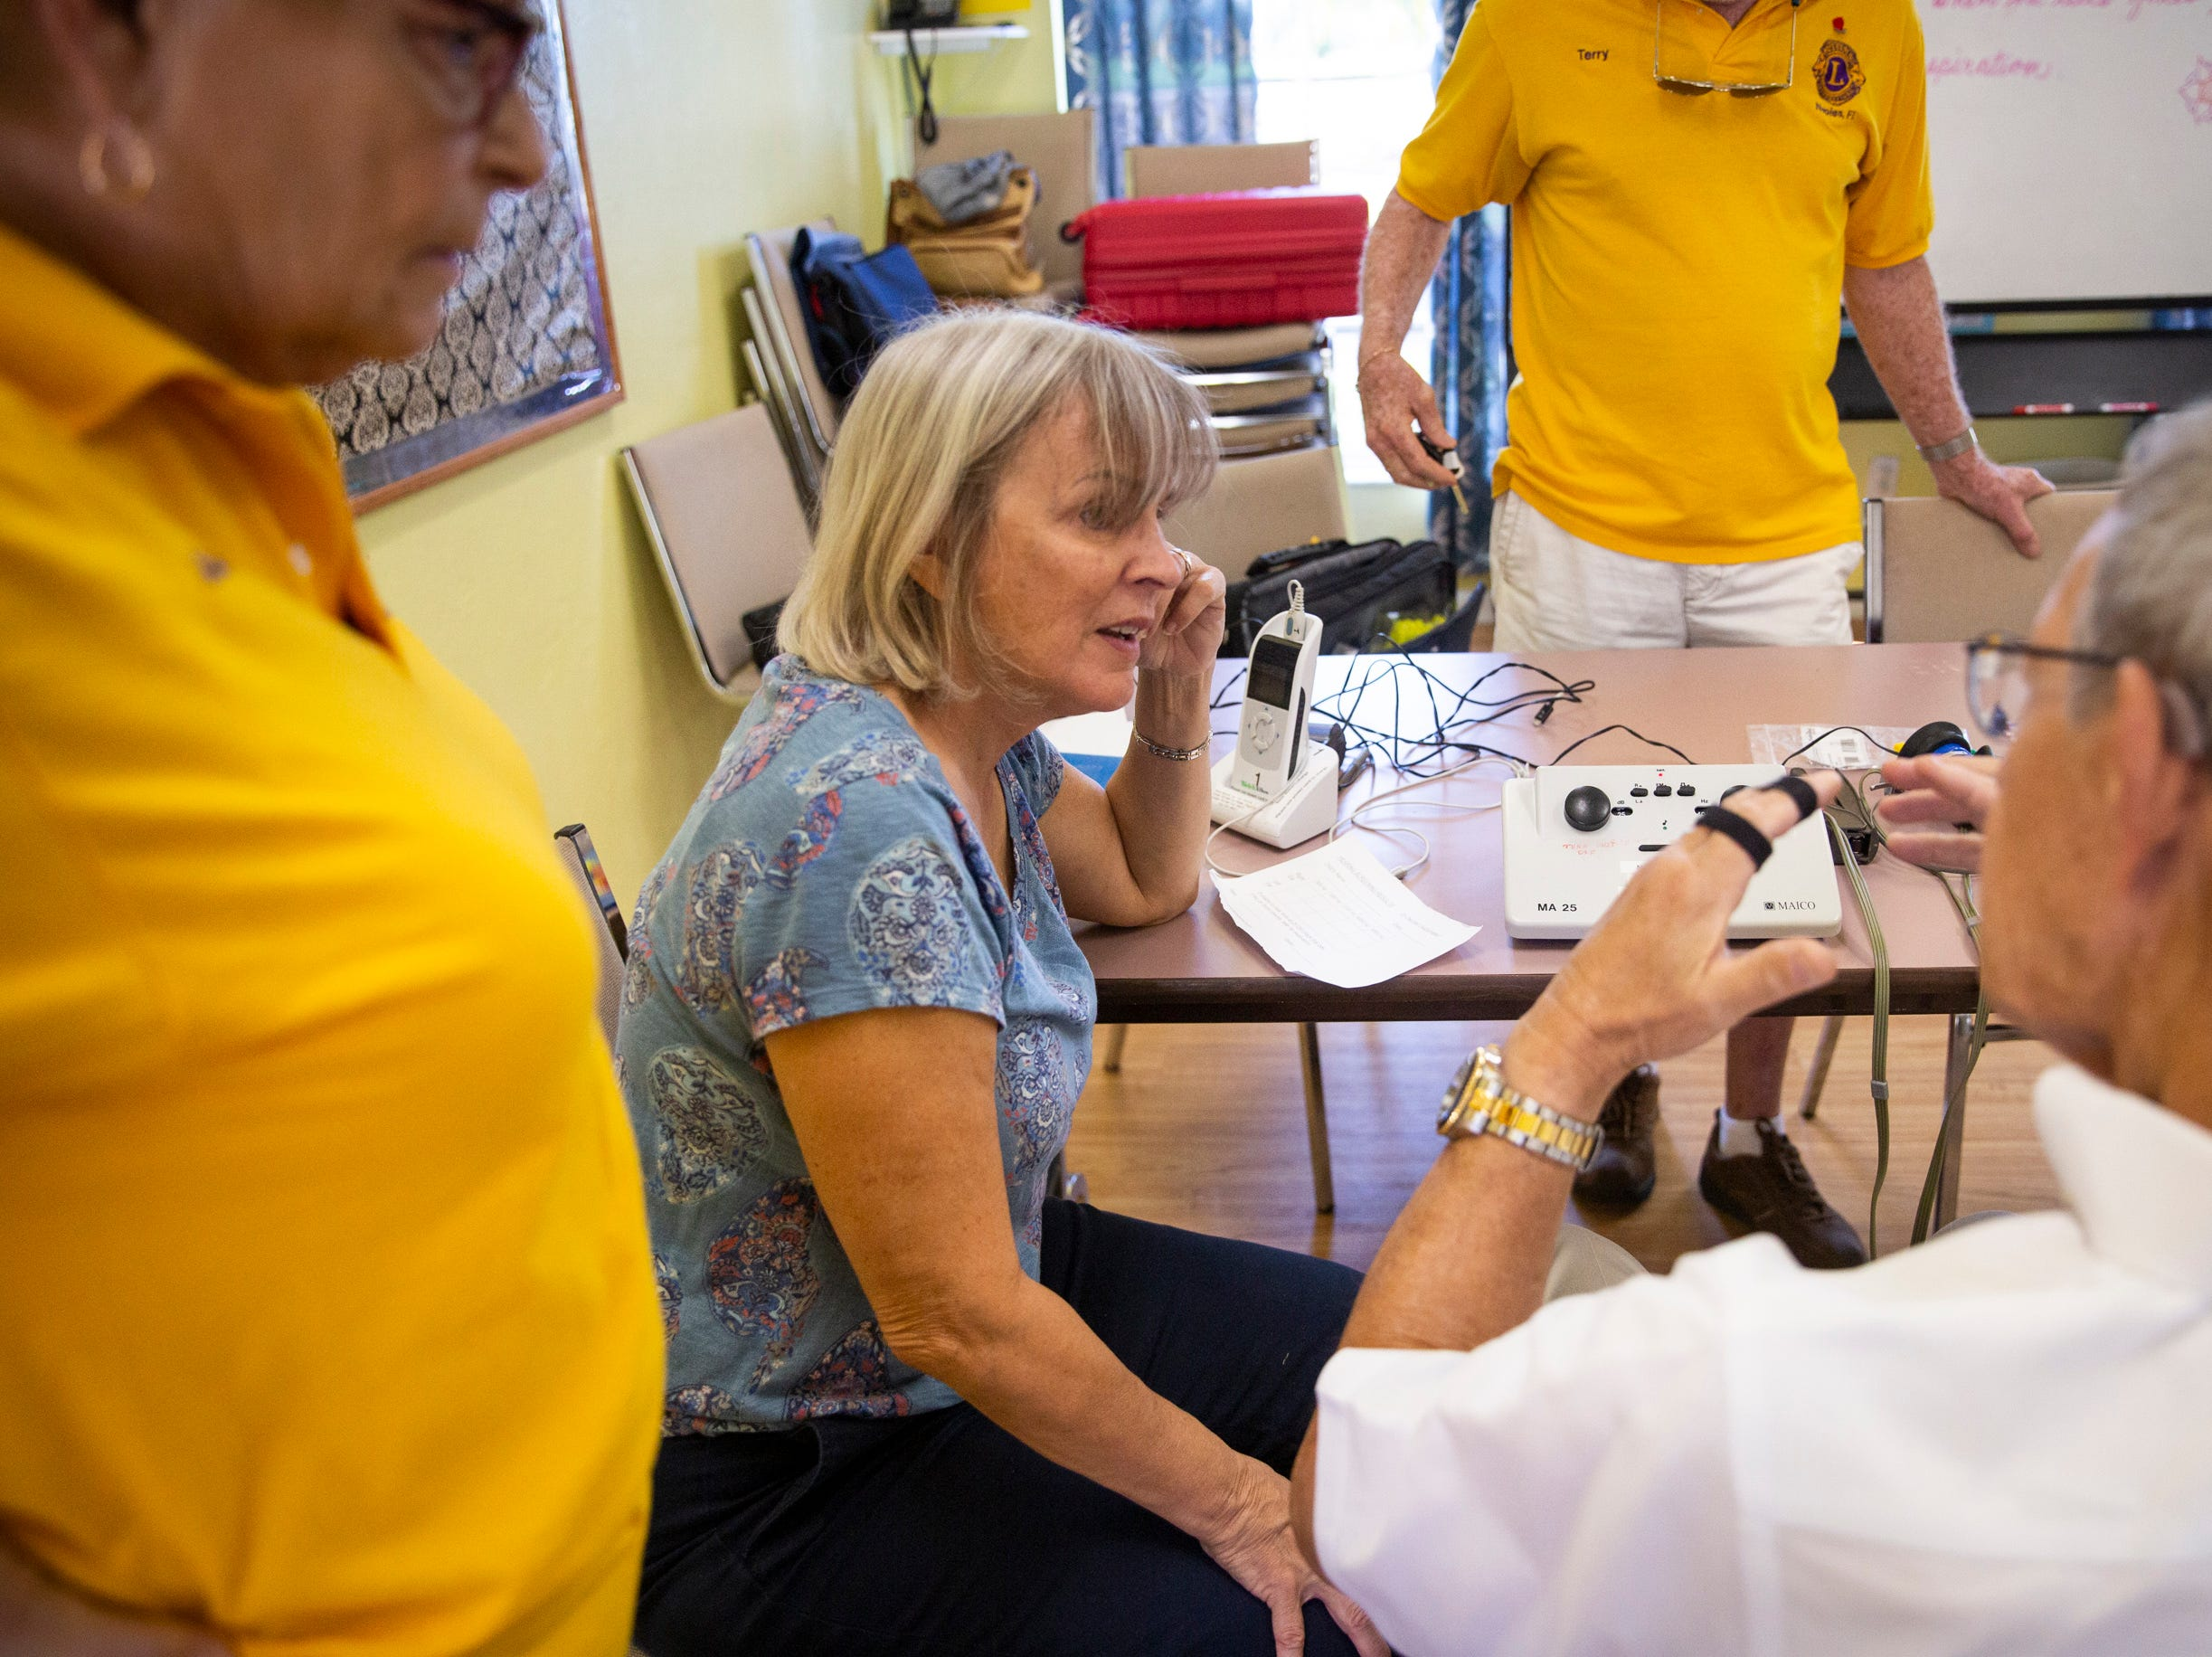 Dr. Howard Freedman, right, shows Merry Hovey, left, and Diane Leone, center, how to use a machine to test hearing at Grace Lutheran Preschool in Naples on Friday, April 12, 2019.